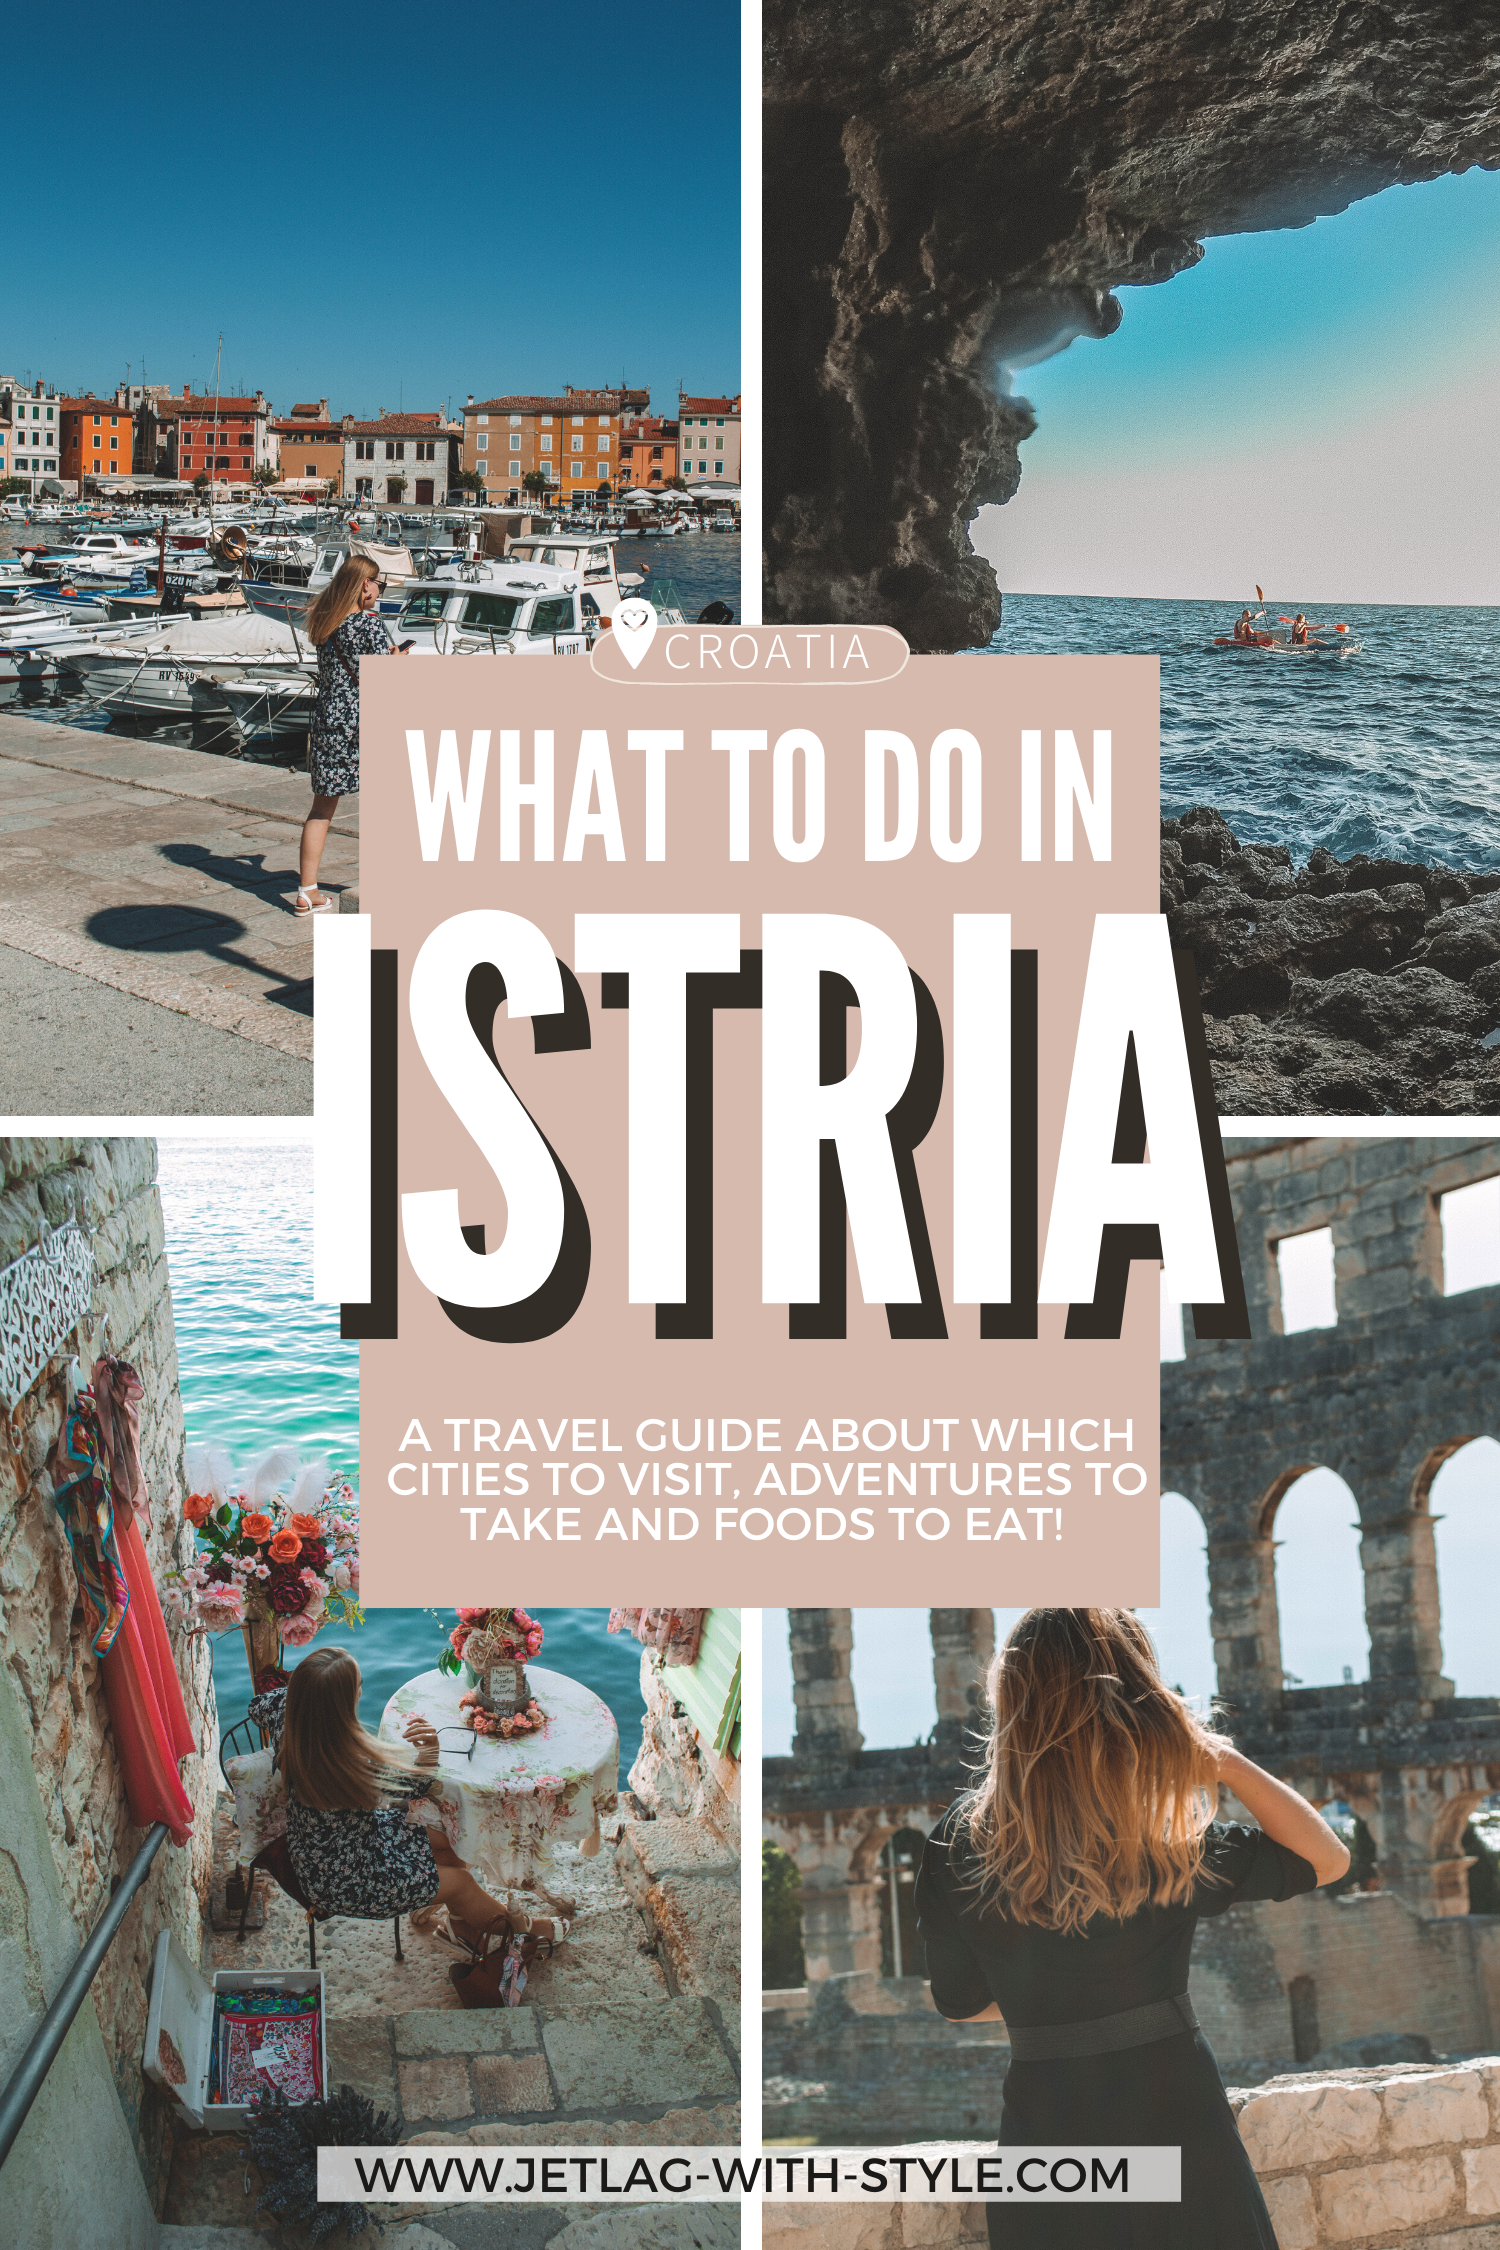 What to do in Istria, Croatia - A Travel Guide